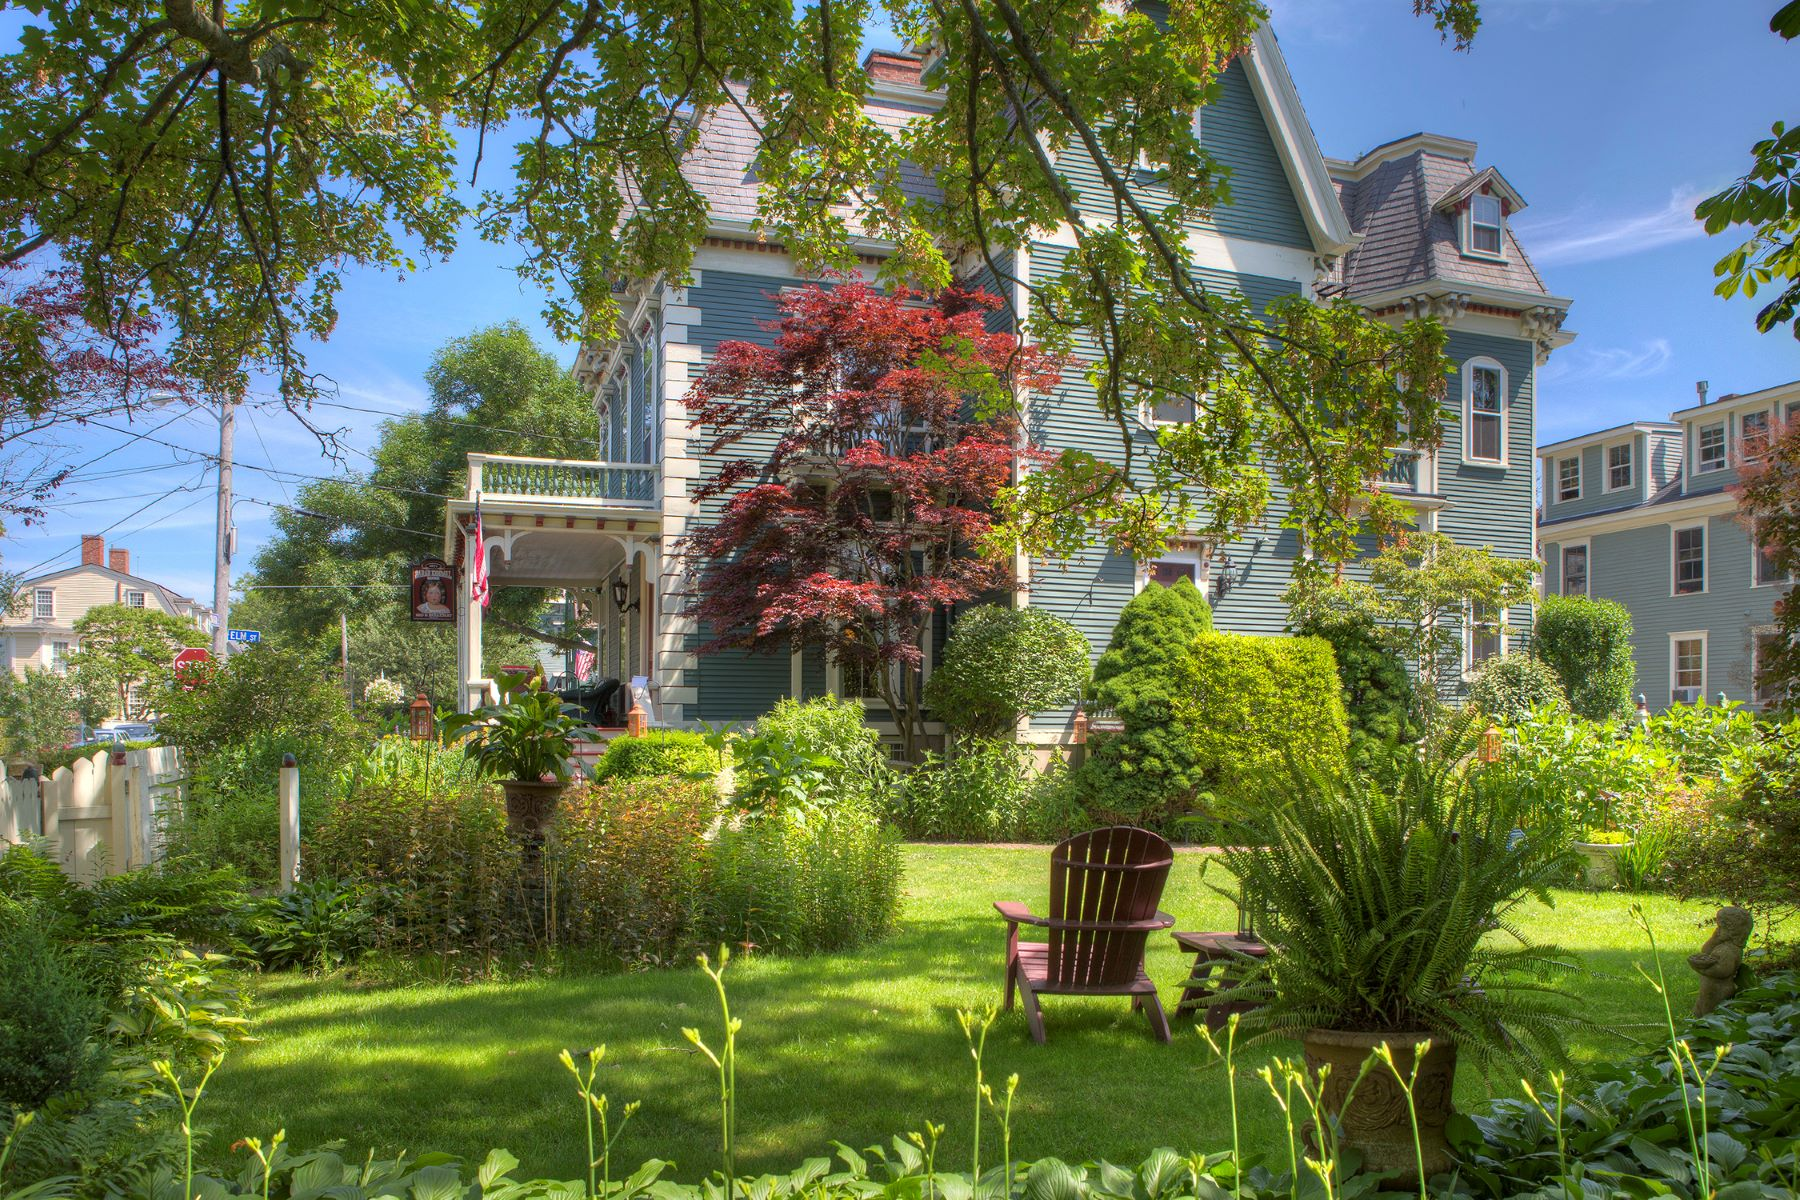 Additional photo for property listing at The Sarah Kendall House 47 Washington Street Newport, Rhode Island 02840 United States